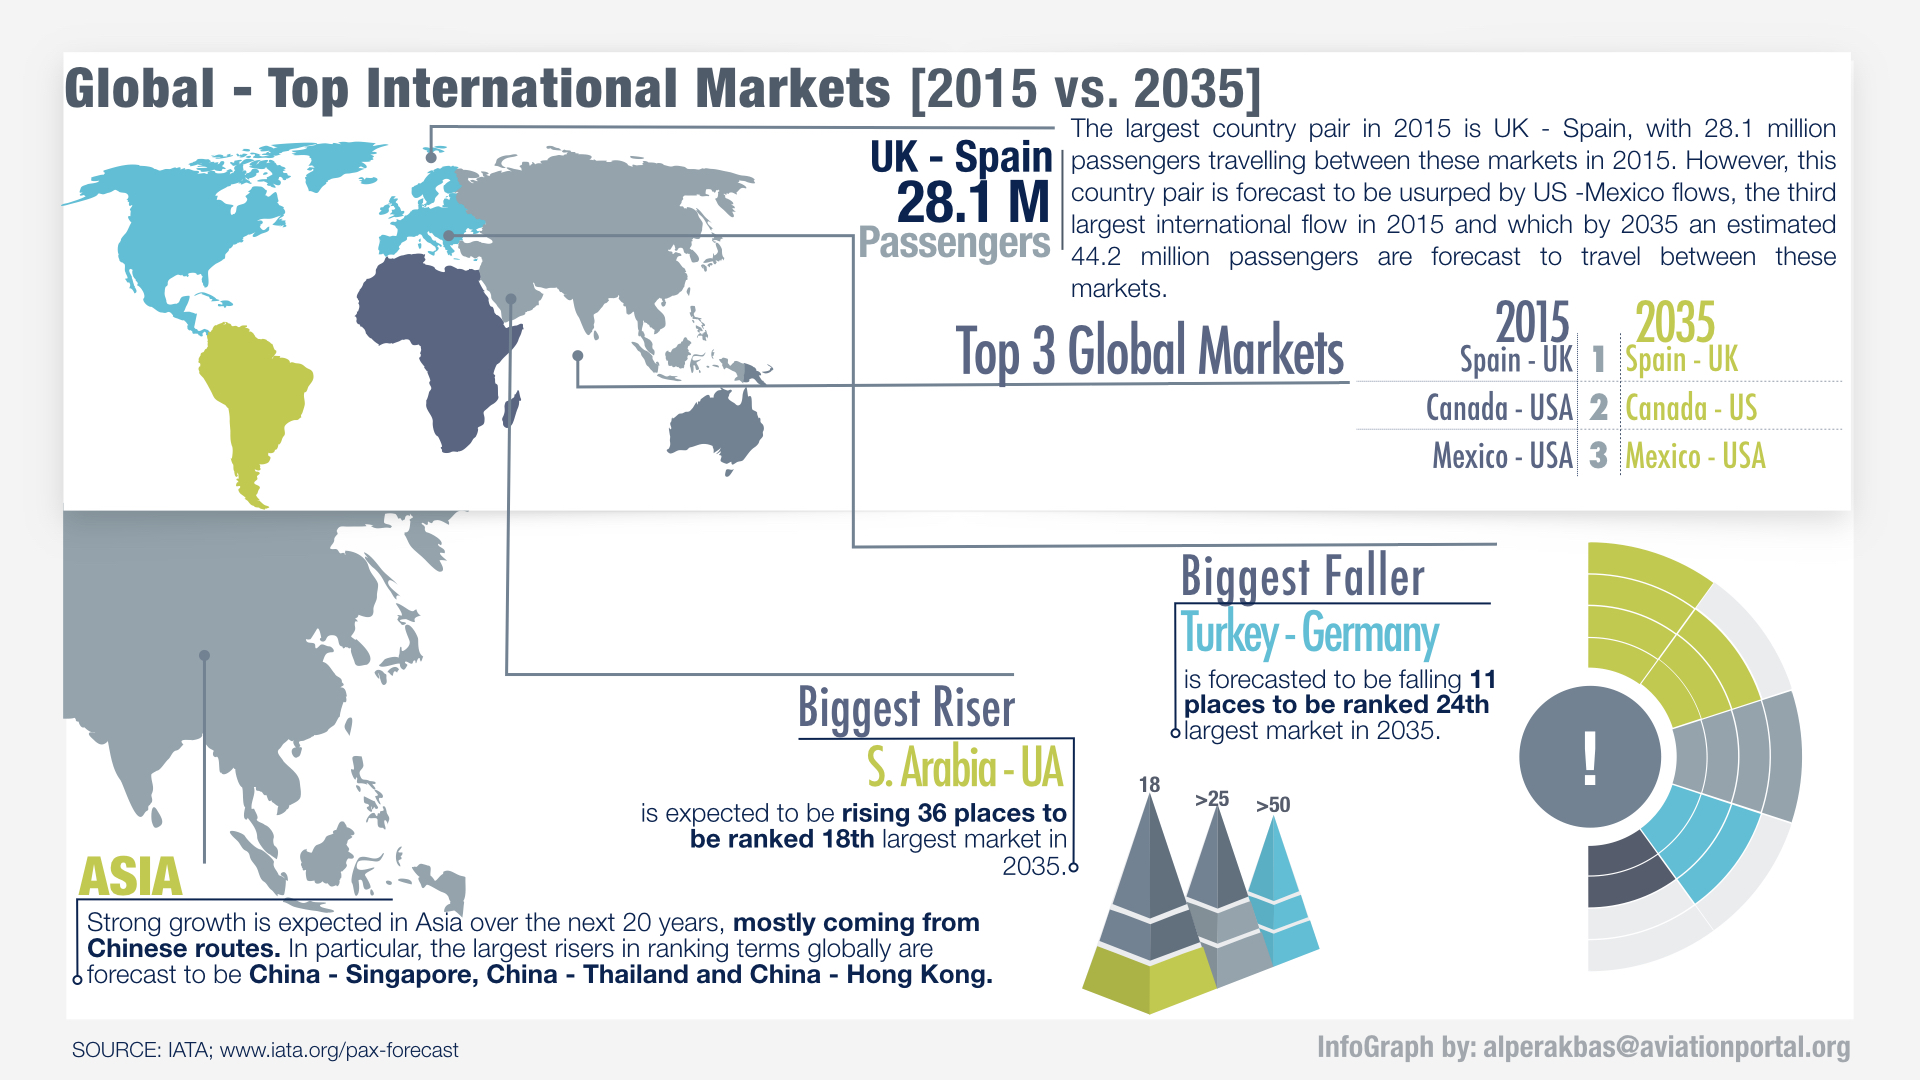 Top International Markets